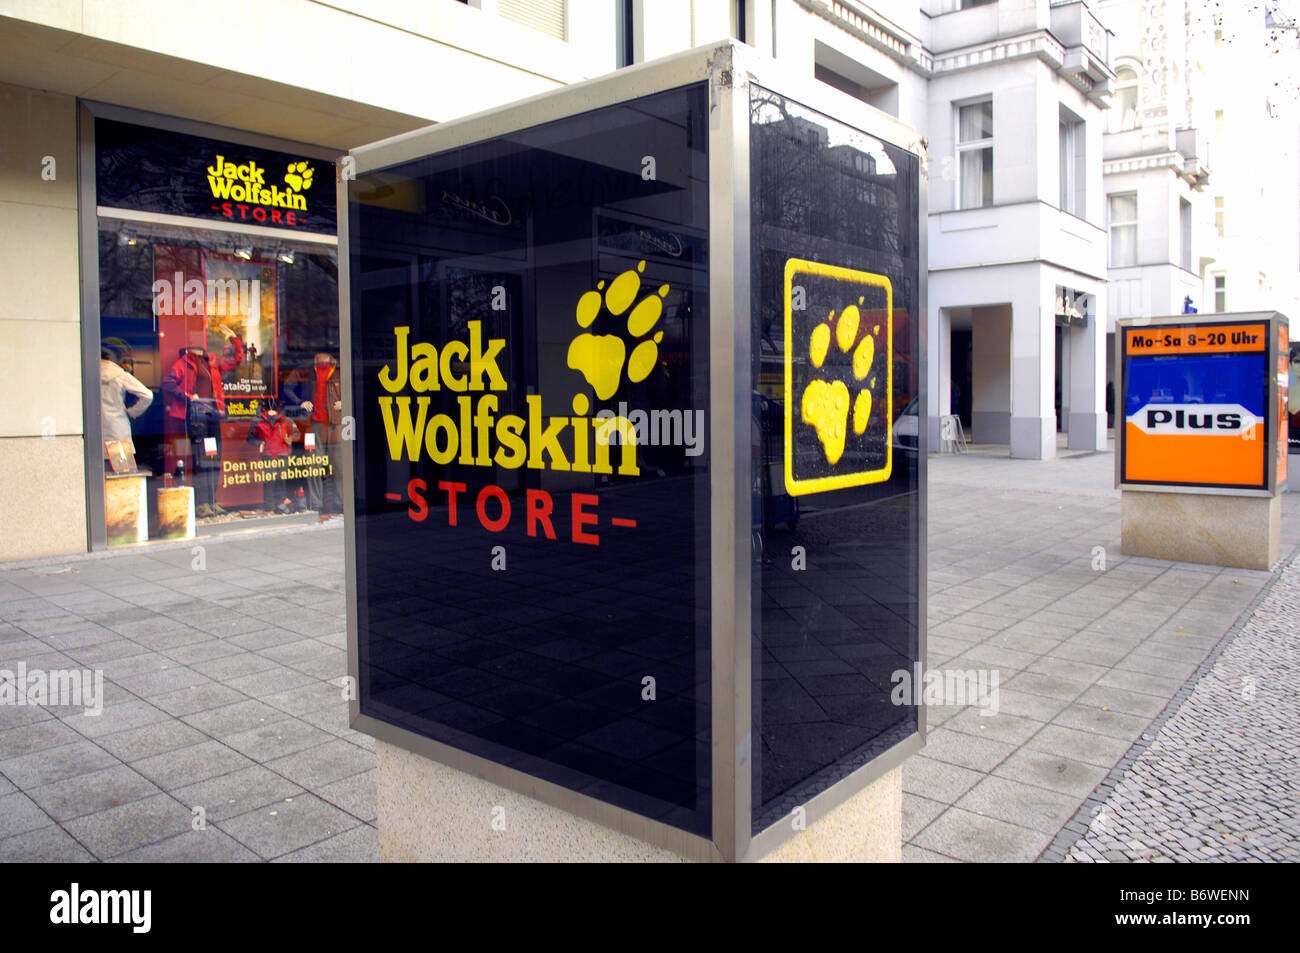 outlet cheap prices 100% genuine Jack Wolfskin Photos & Jack Wolfskin Images - Alamy